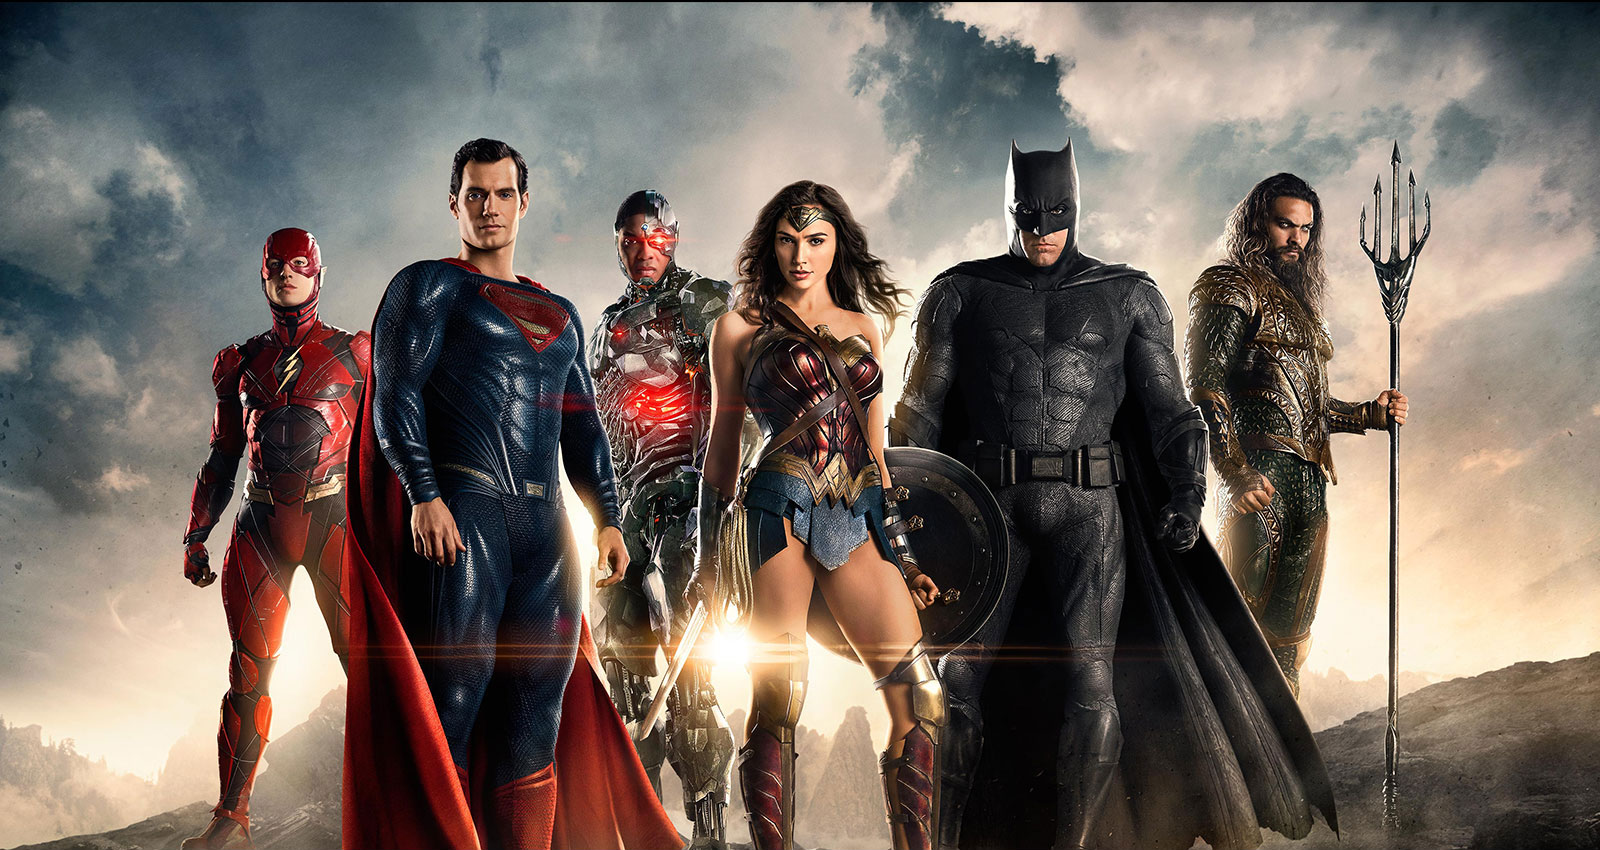 'Justice League' riddled with plot holes